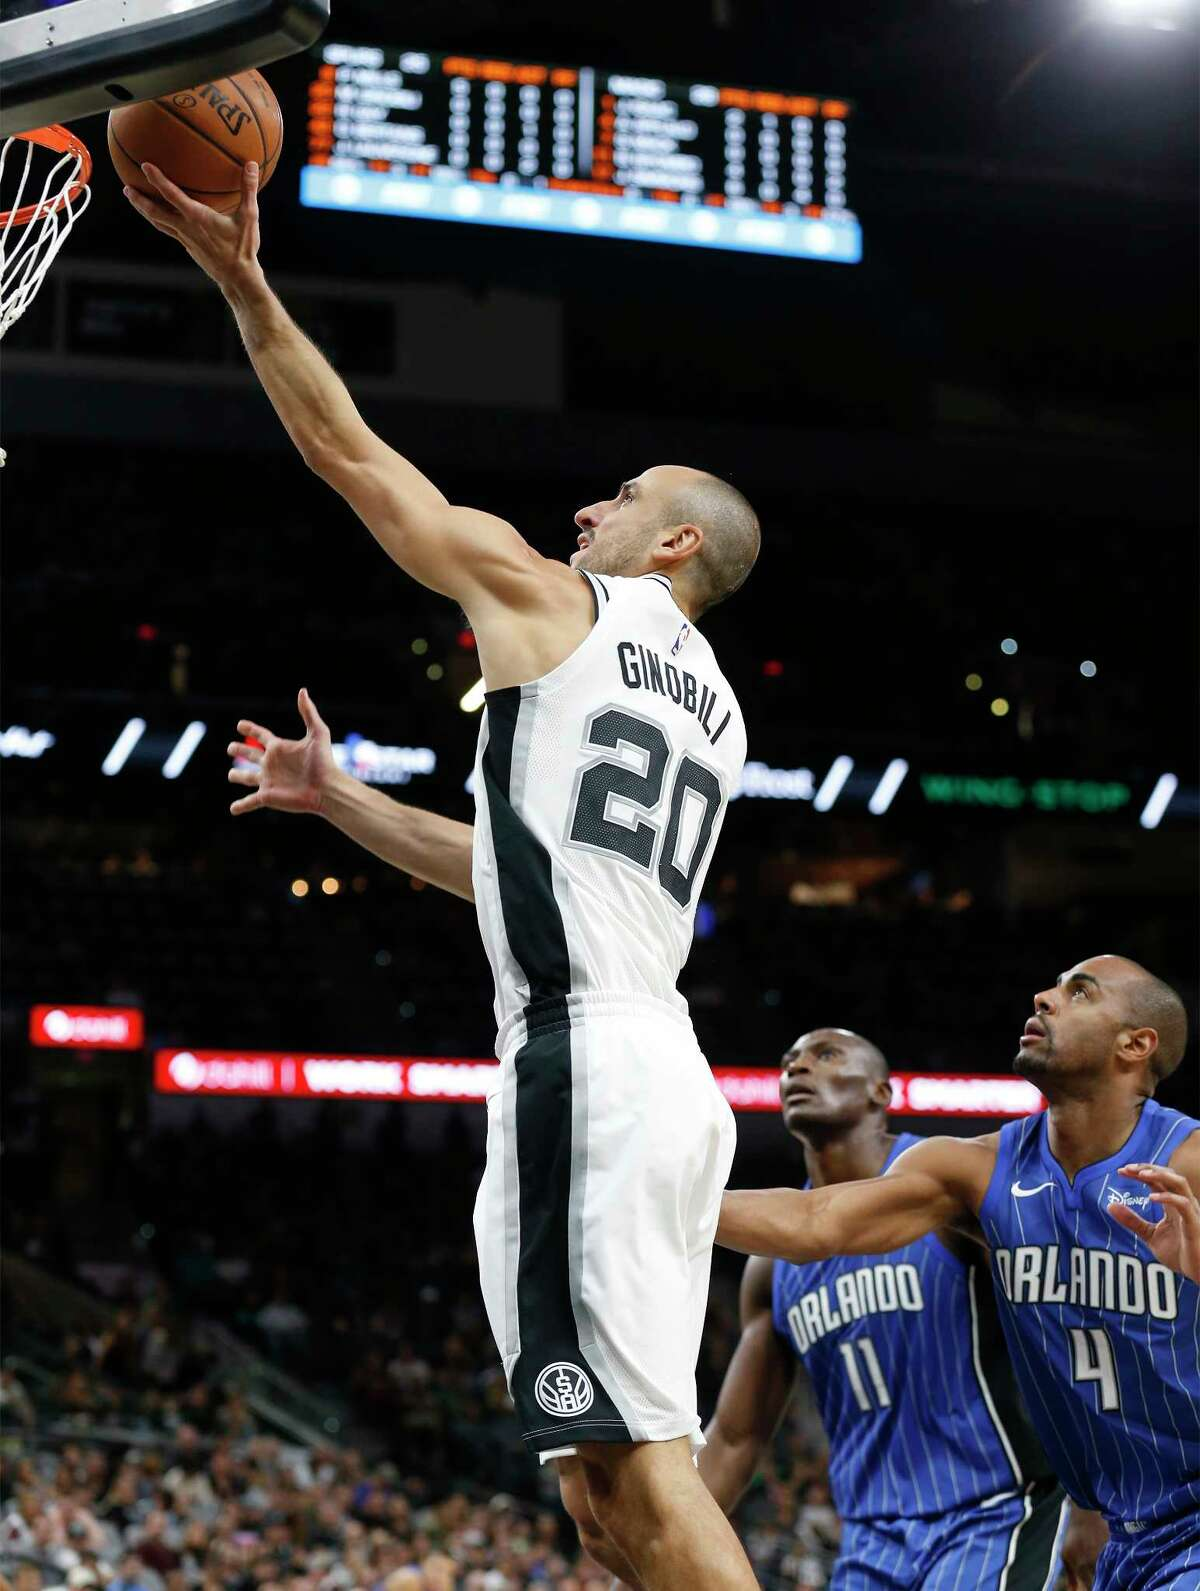 Spurs' Manu Ginobili (20) slips past for a score against Orlando Magic's Arron Afflalo (04) and Bismack Biyombo (11) during their pre-season game at the AT&T Center on Tuesday, Oct. 10, 2017.